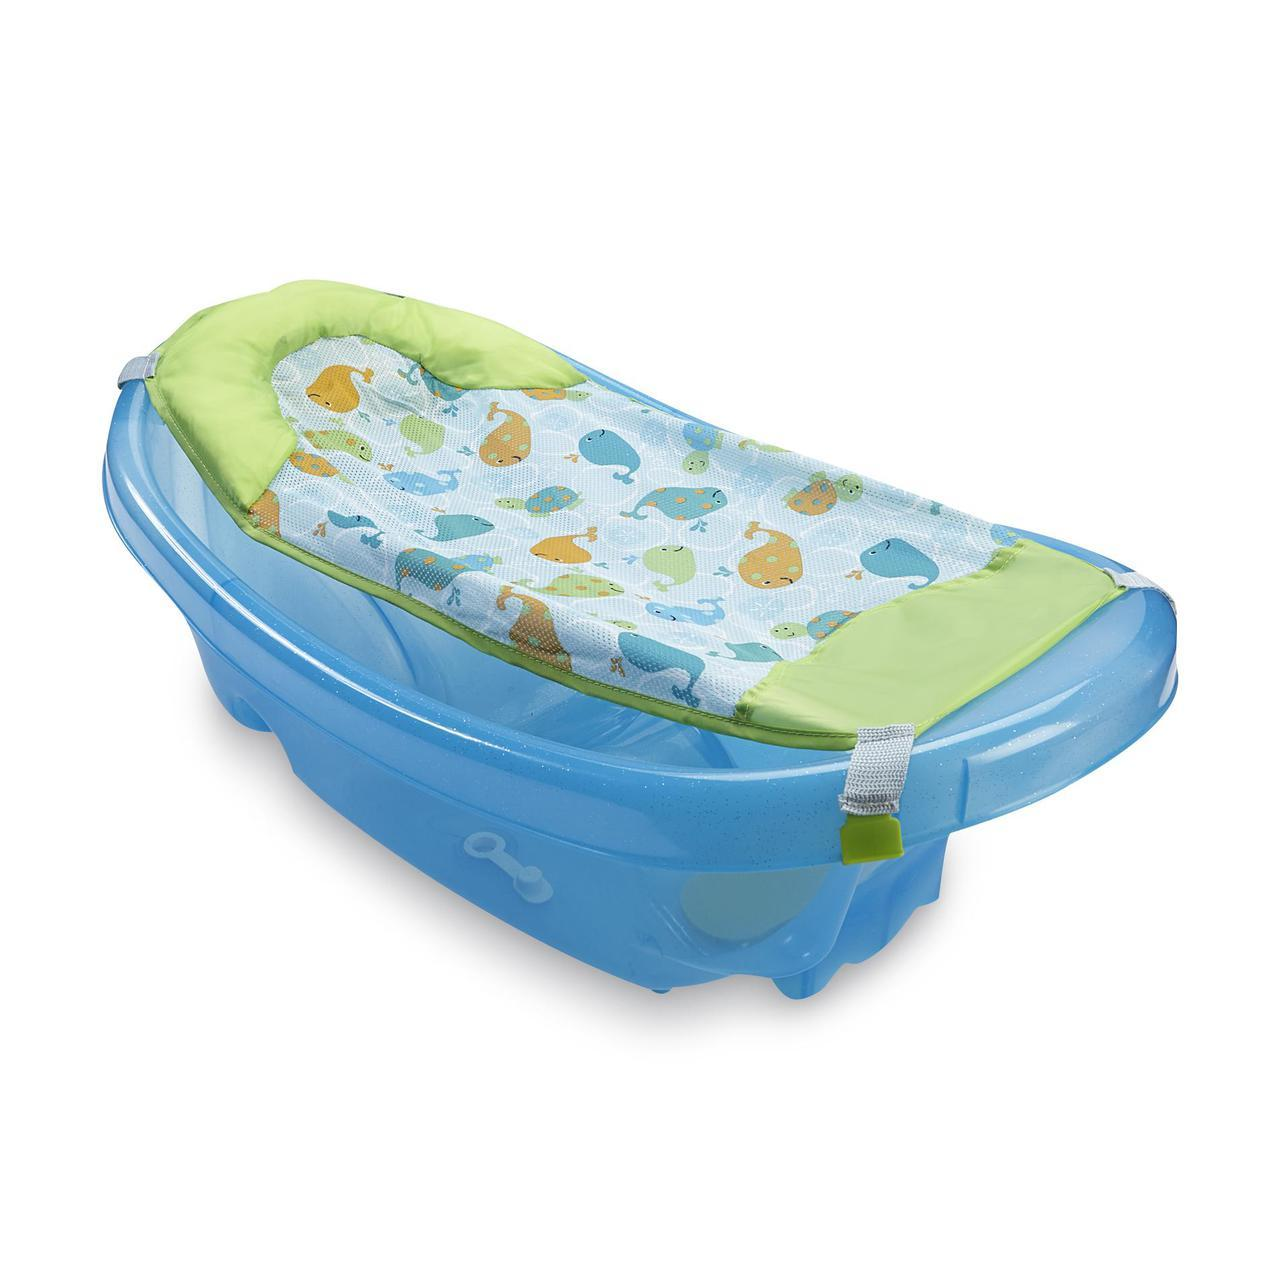 Summer Infant 3 Stage Newborn to Toddler Baby Bath, Monkey Moons